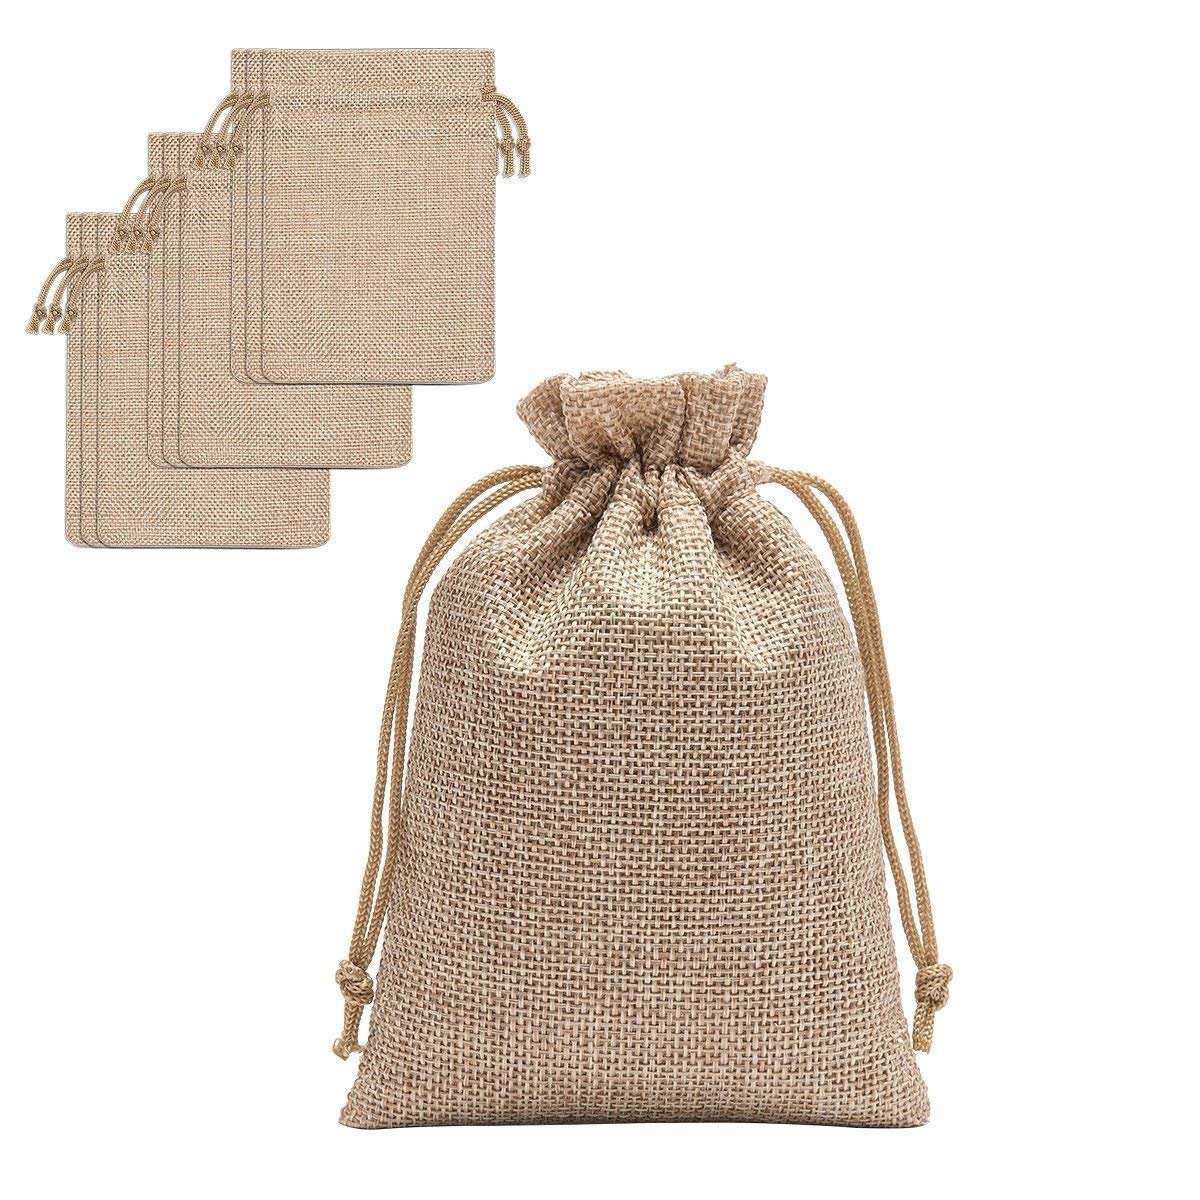 60 Pieces Burlap Bags with Drawstring - 5.3x3.8 inch Drawstring Gift Bags Jewelry Pouch for Wedding Party DIY Craft and Christmas Homtable